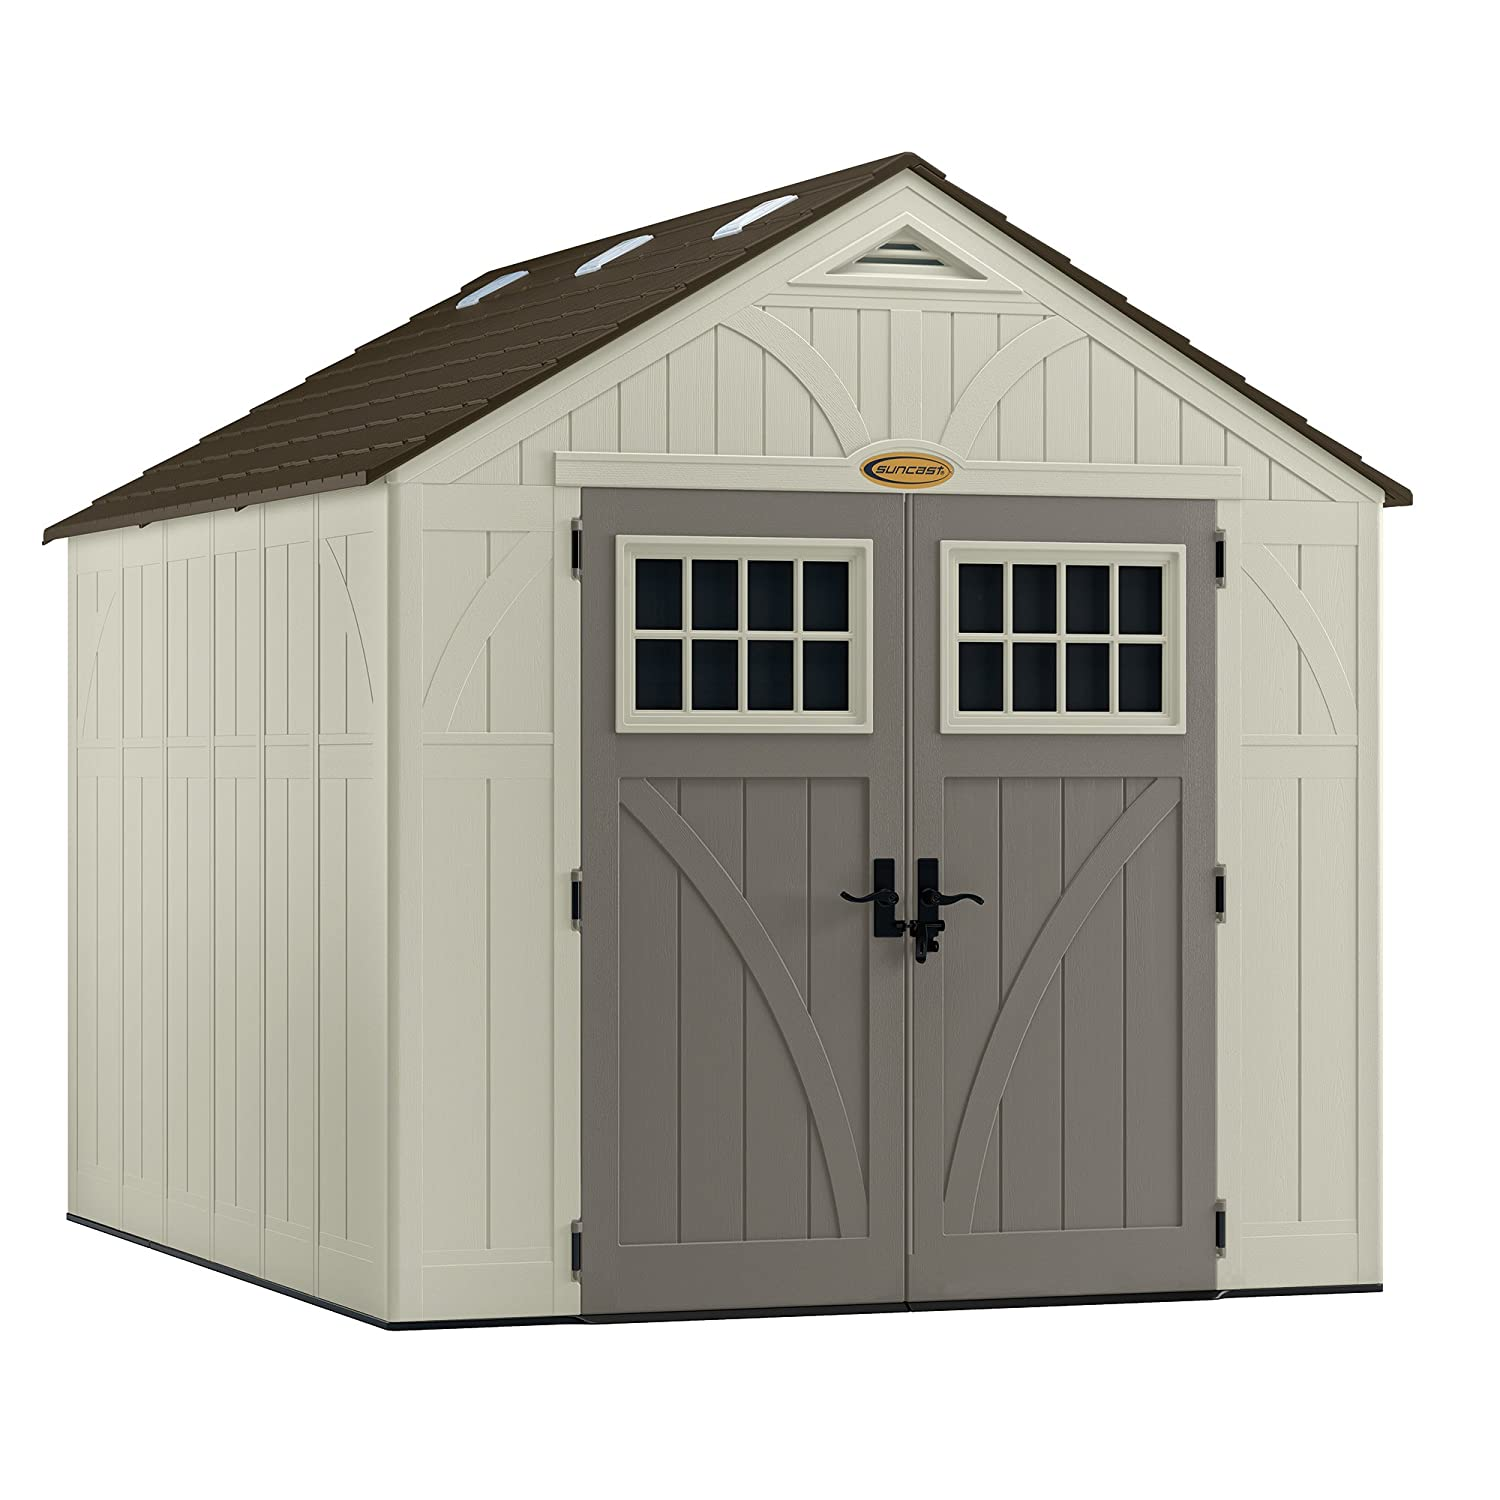 Amazon Suncast BMS8100 Tremont 8 x 10 Storage Shed